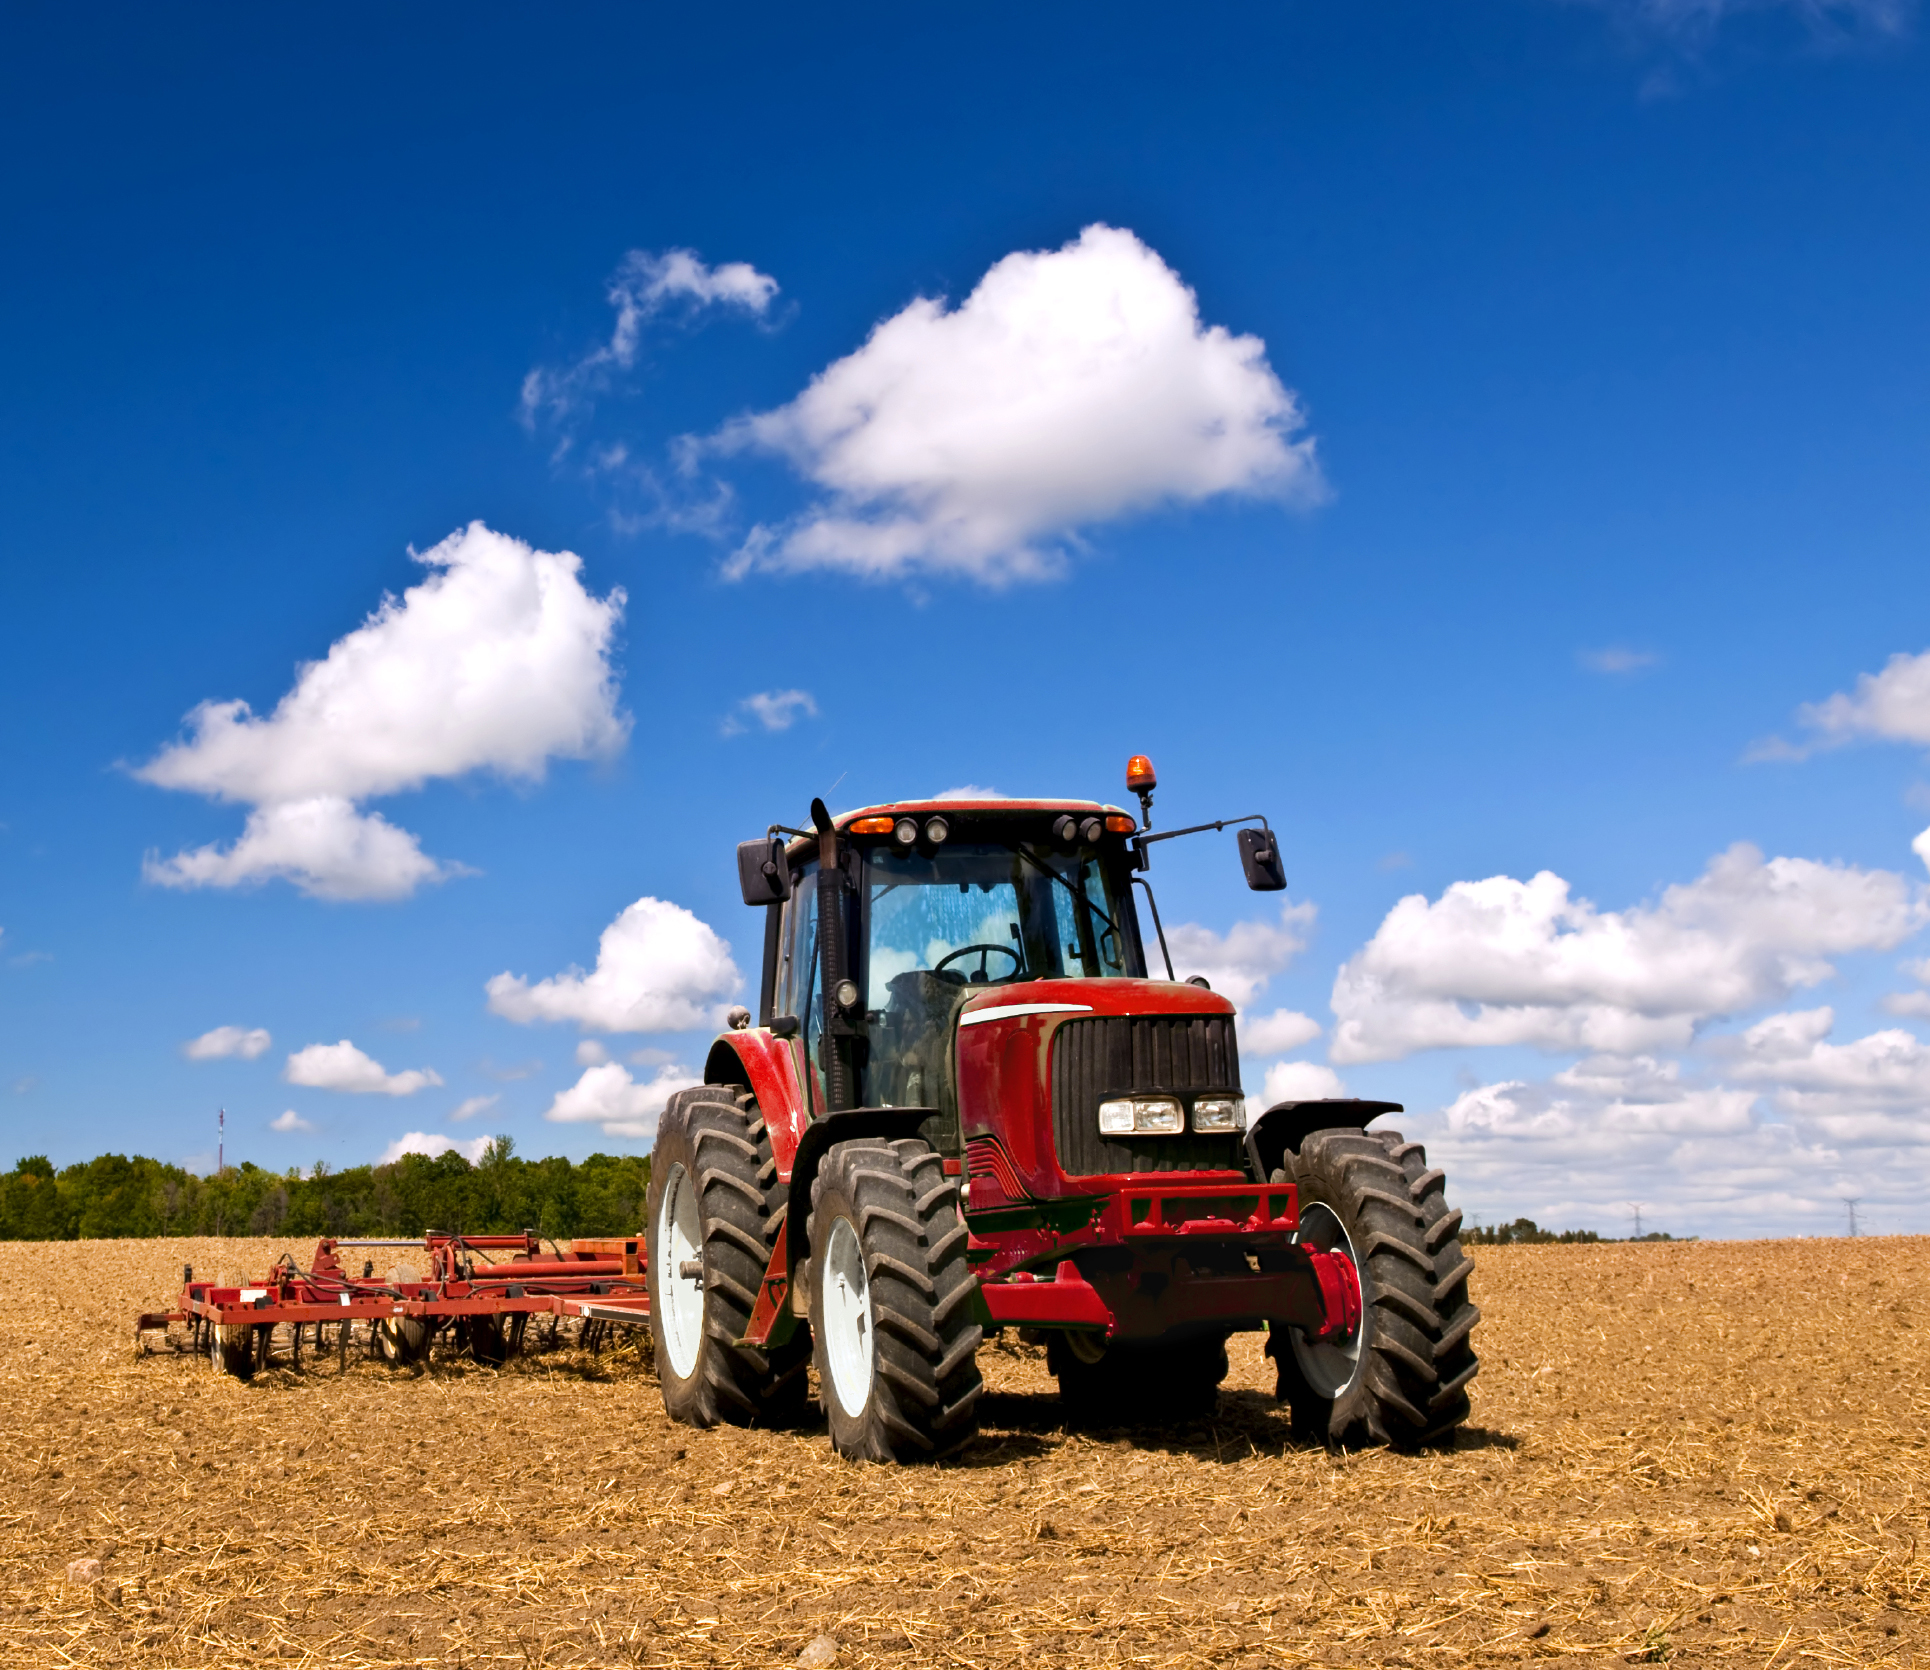 Tractor-in-plowed-field-000011916975_Large